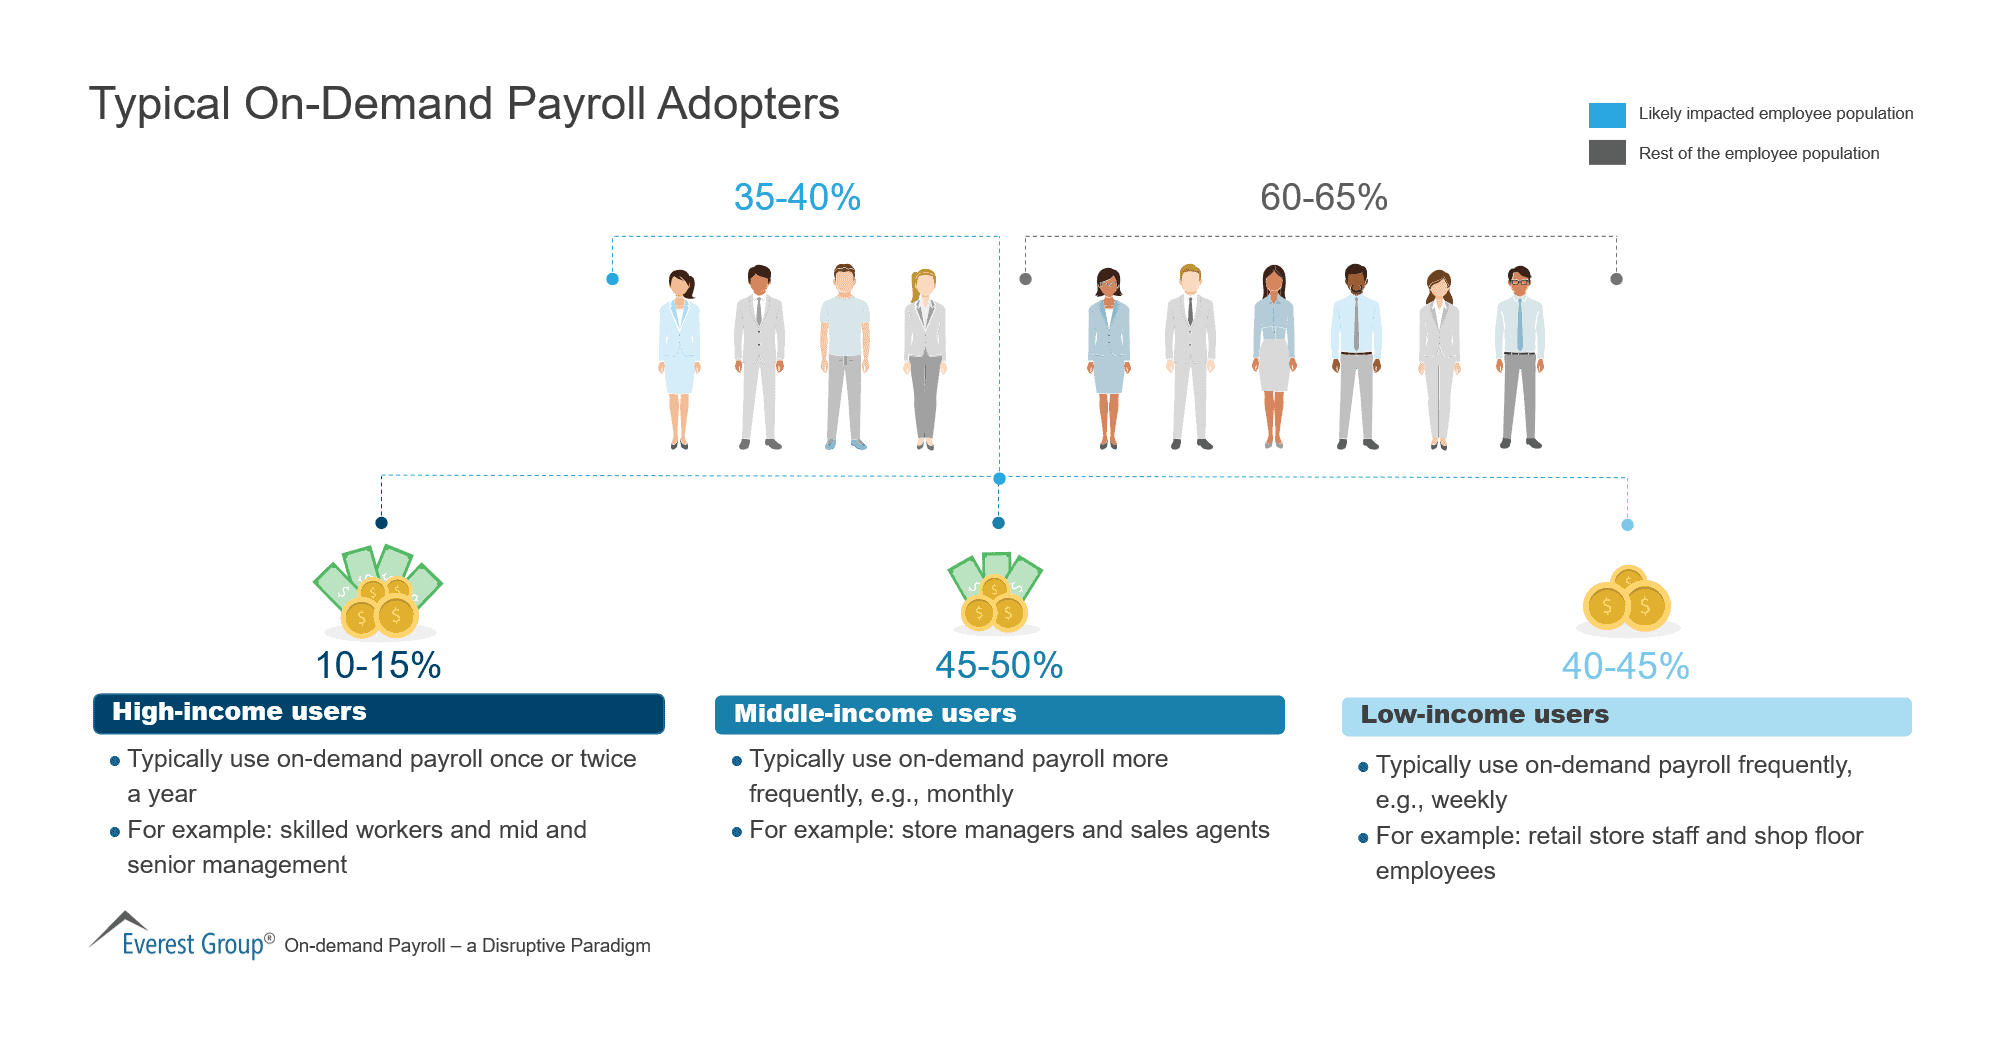 Typical On-Demand Payroll Adopters